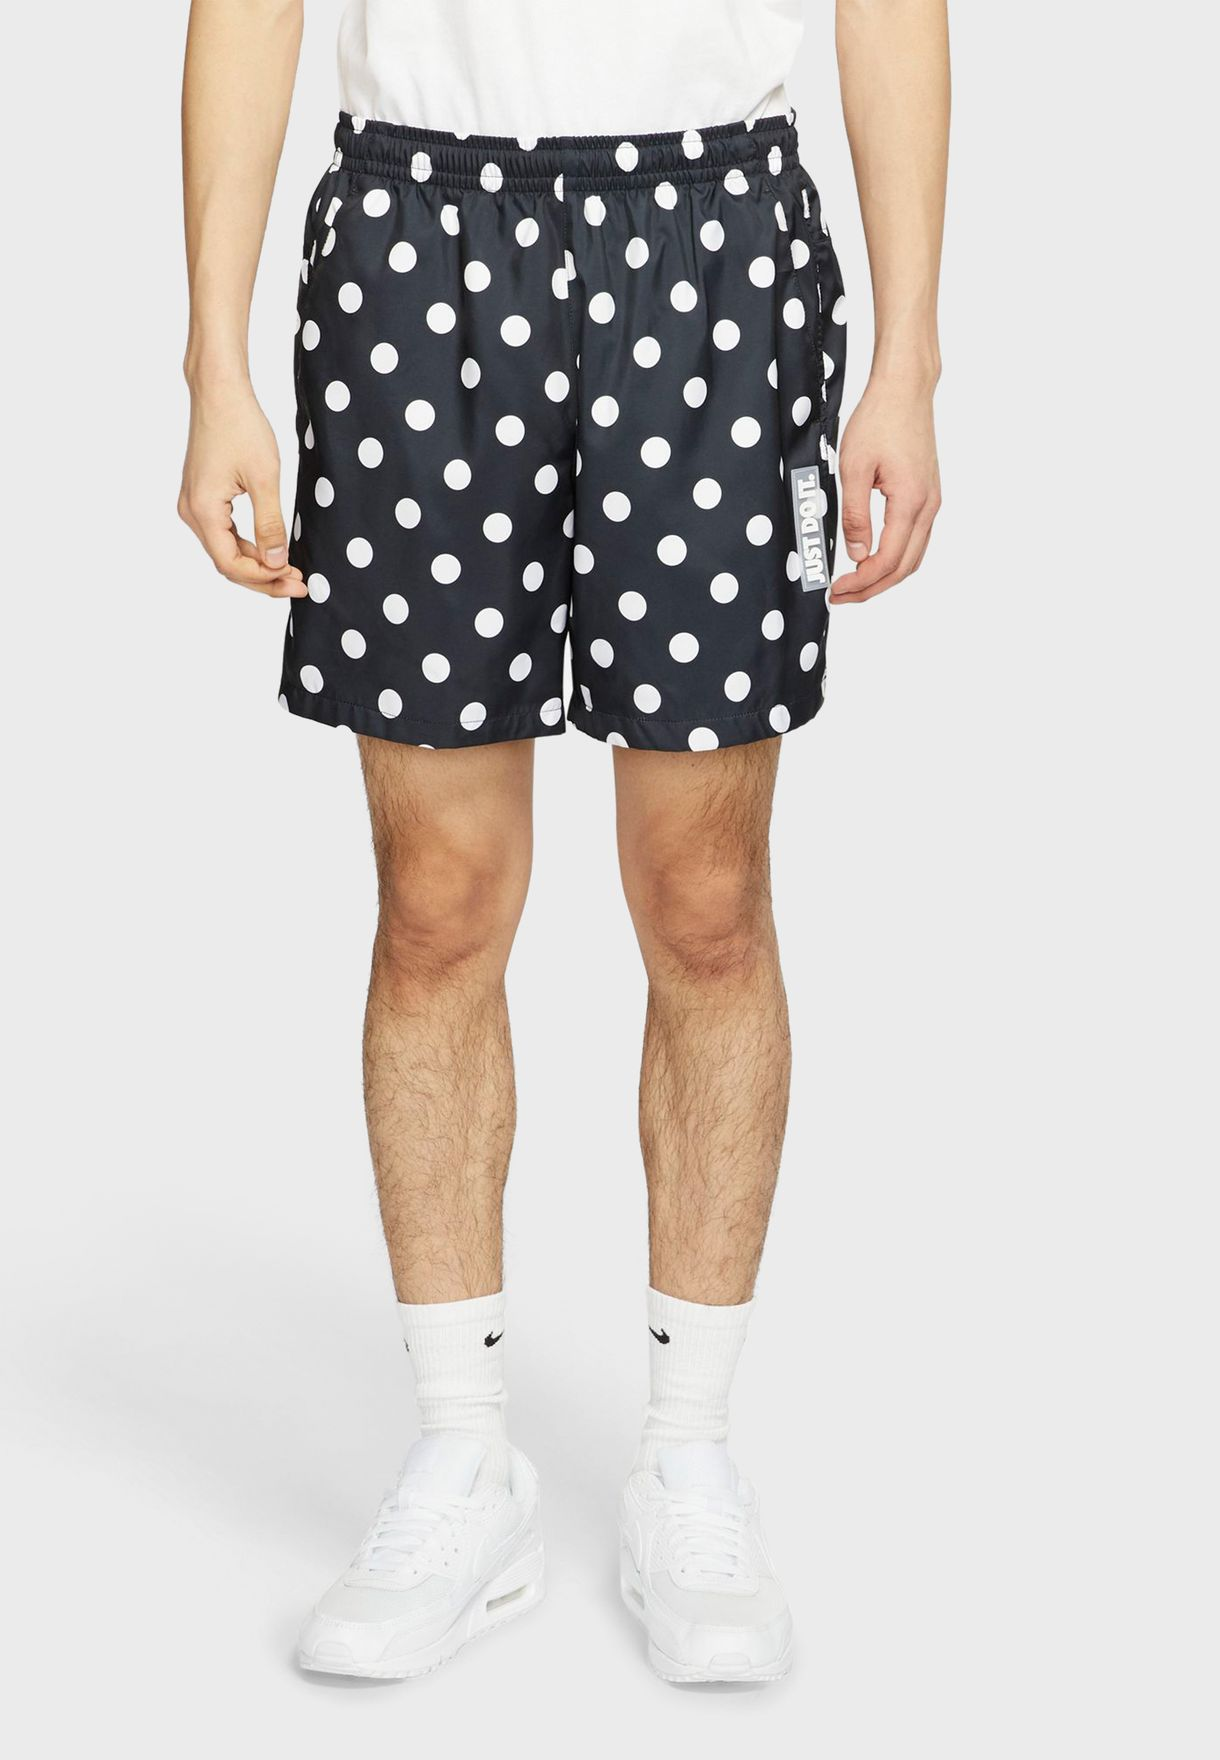 NSW Just Do It Woven Shorts